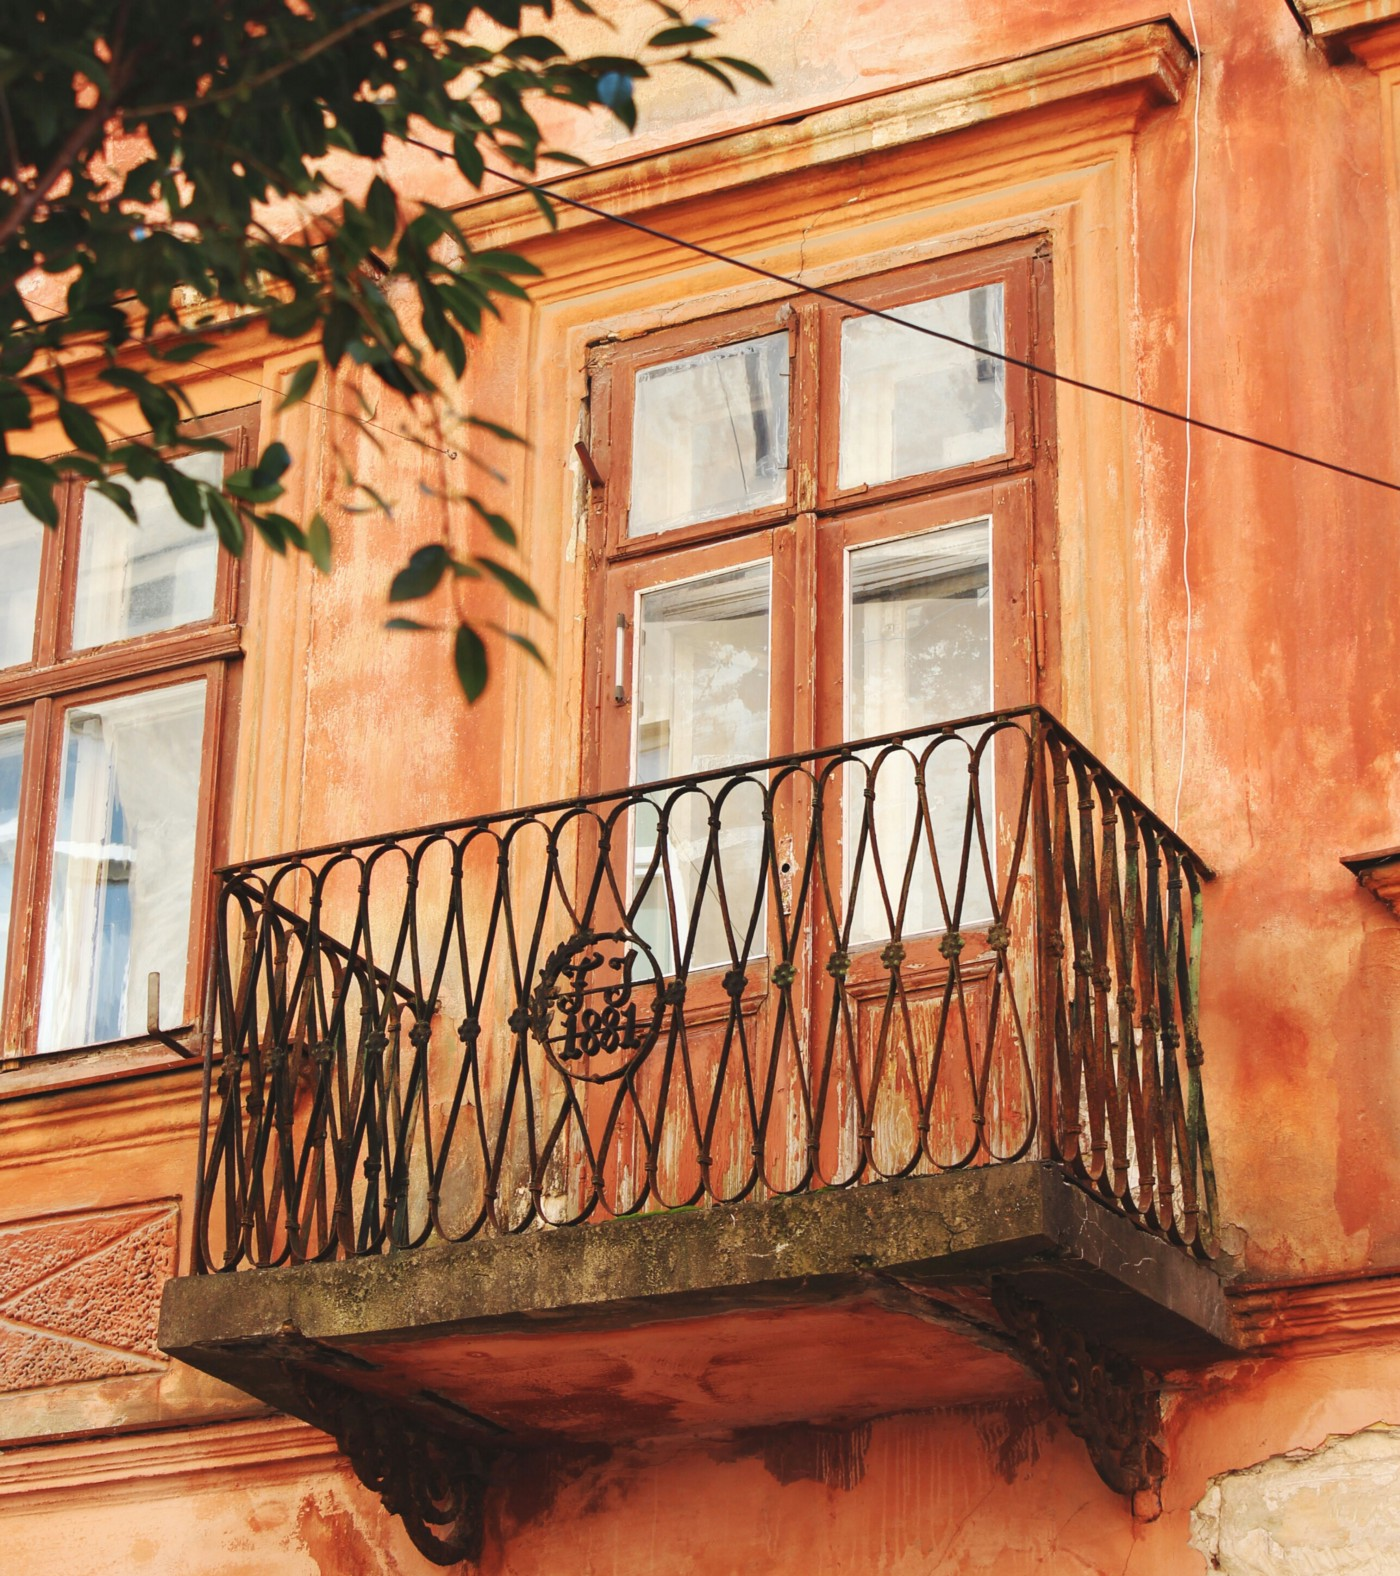 A wrought iron balcony on the upper floor of a mottled terra cotta colored building with tree leaves in the upper left corner